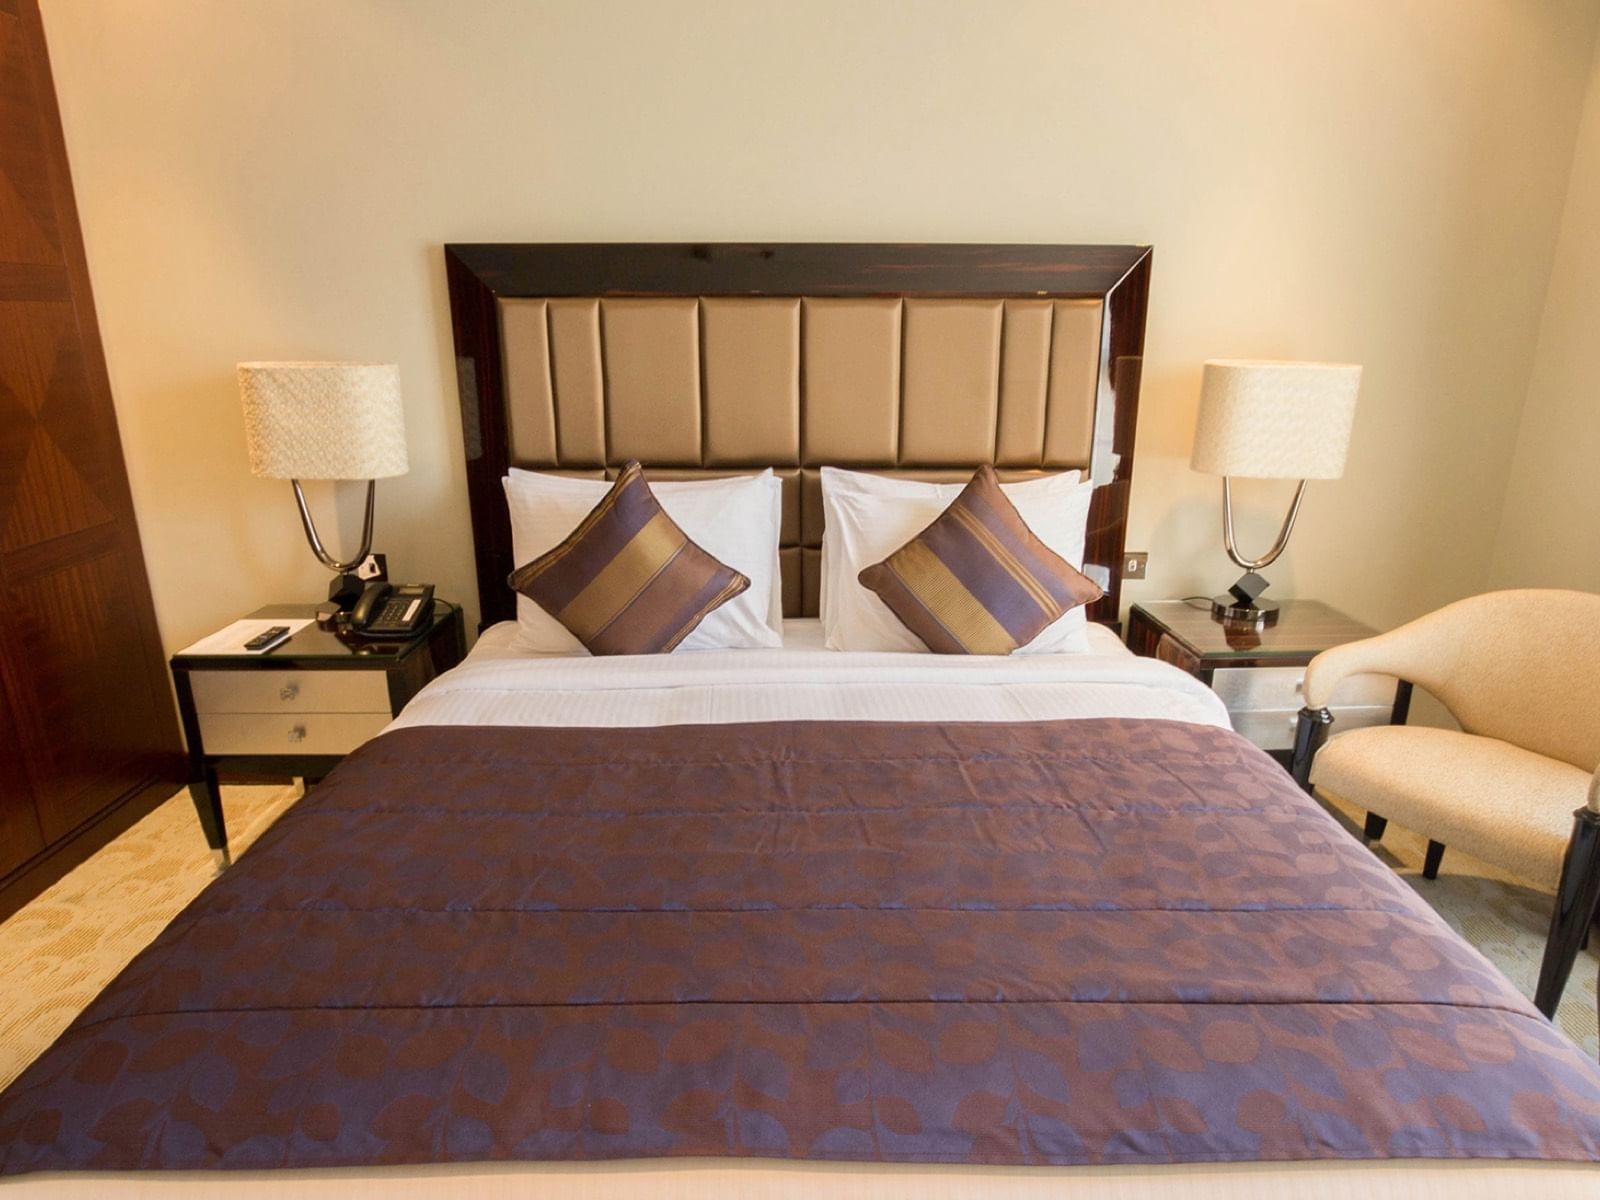 Deluxe Room Front View at Strato Hotel by Warwick